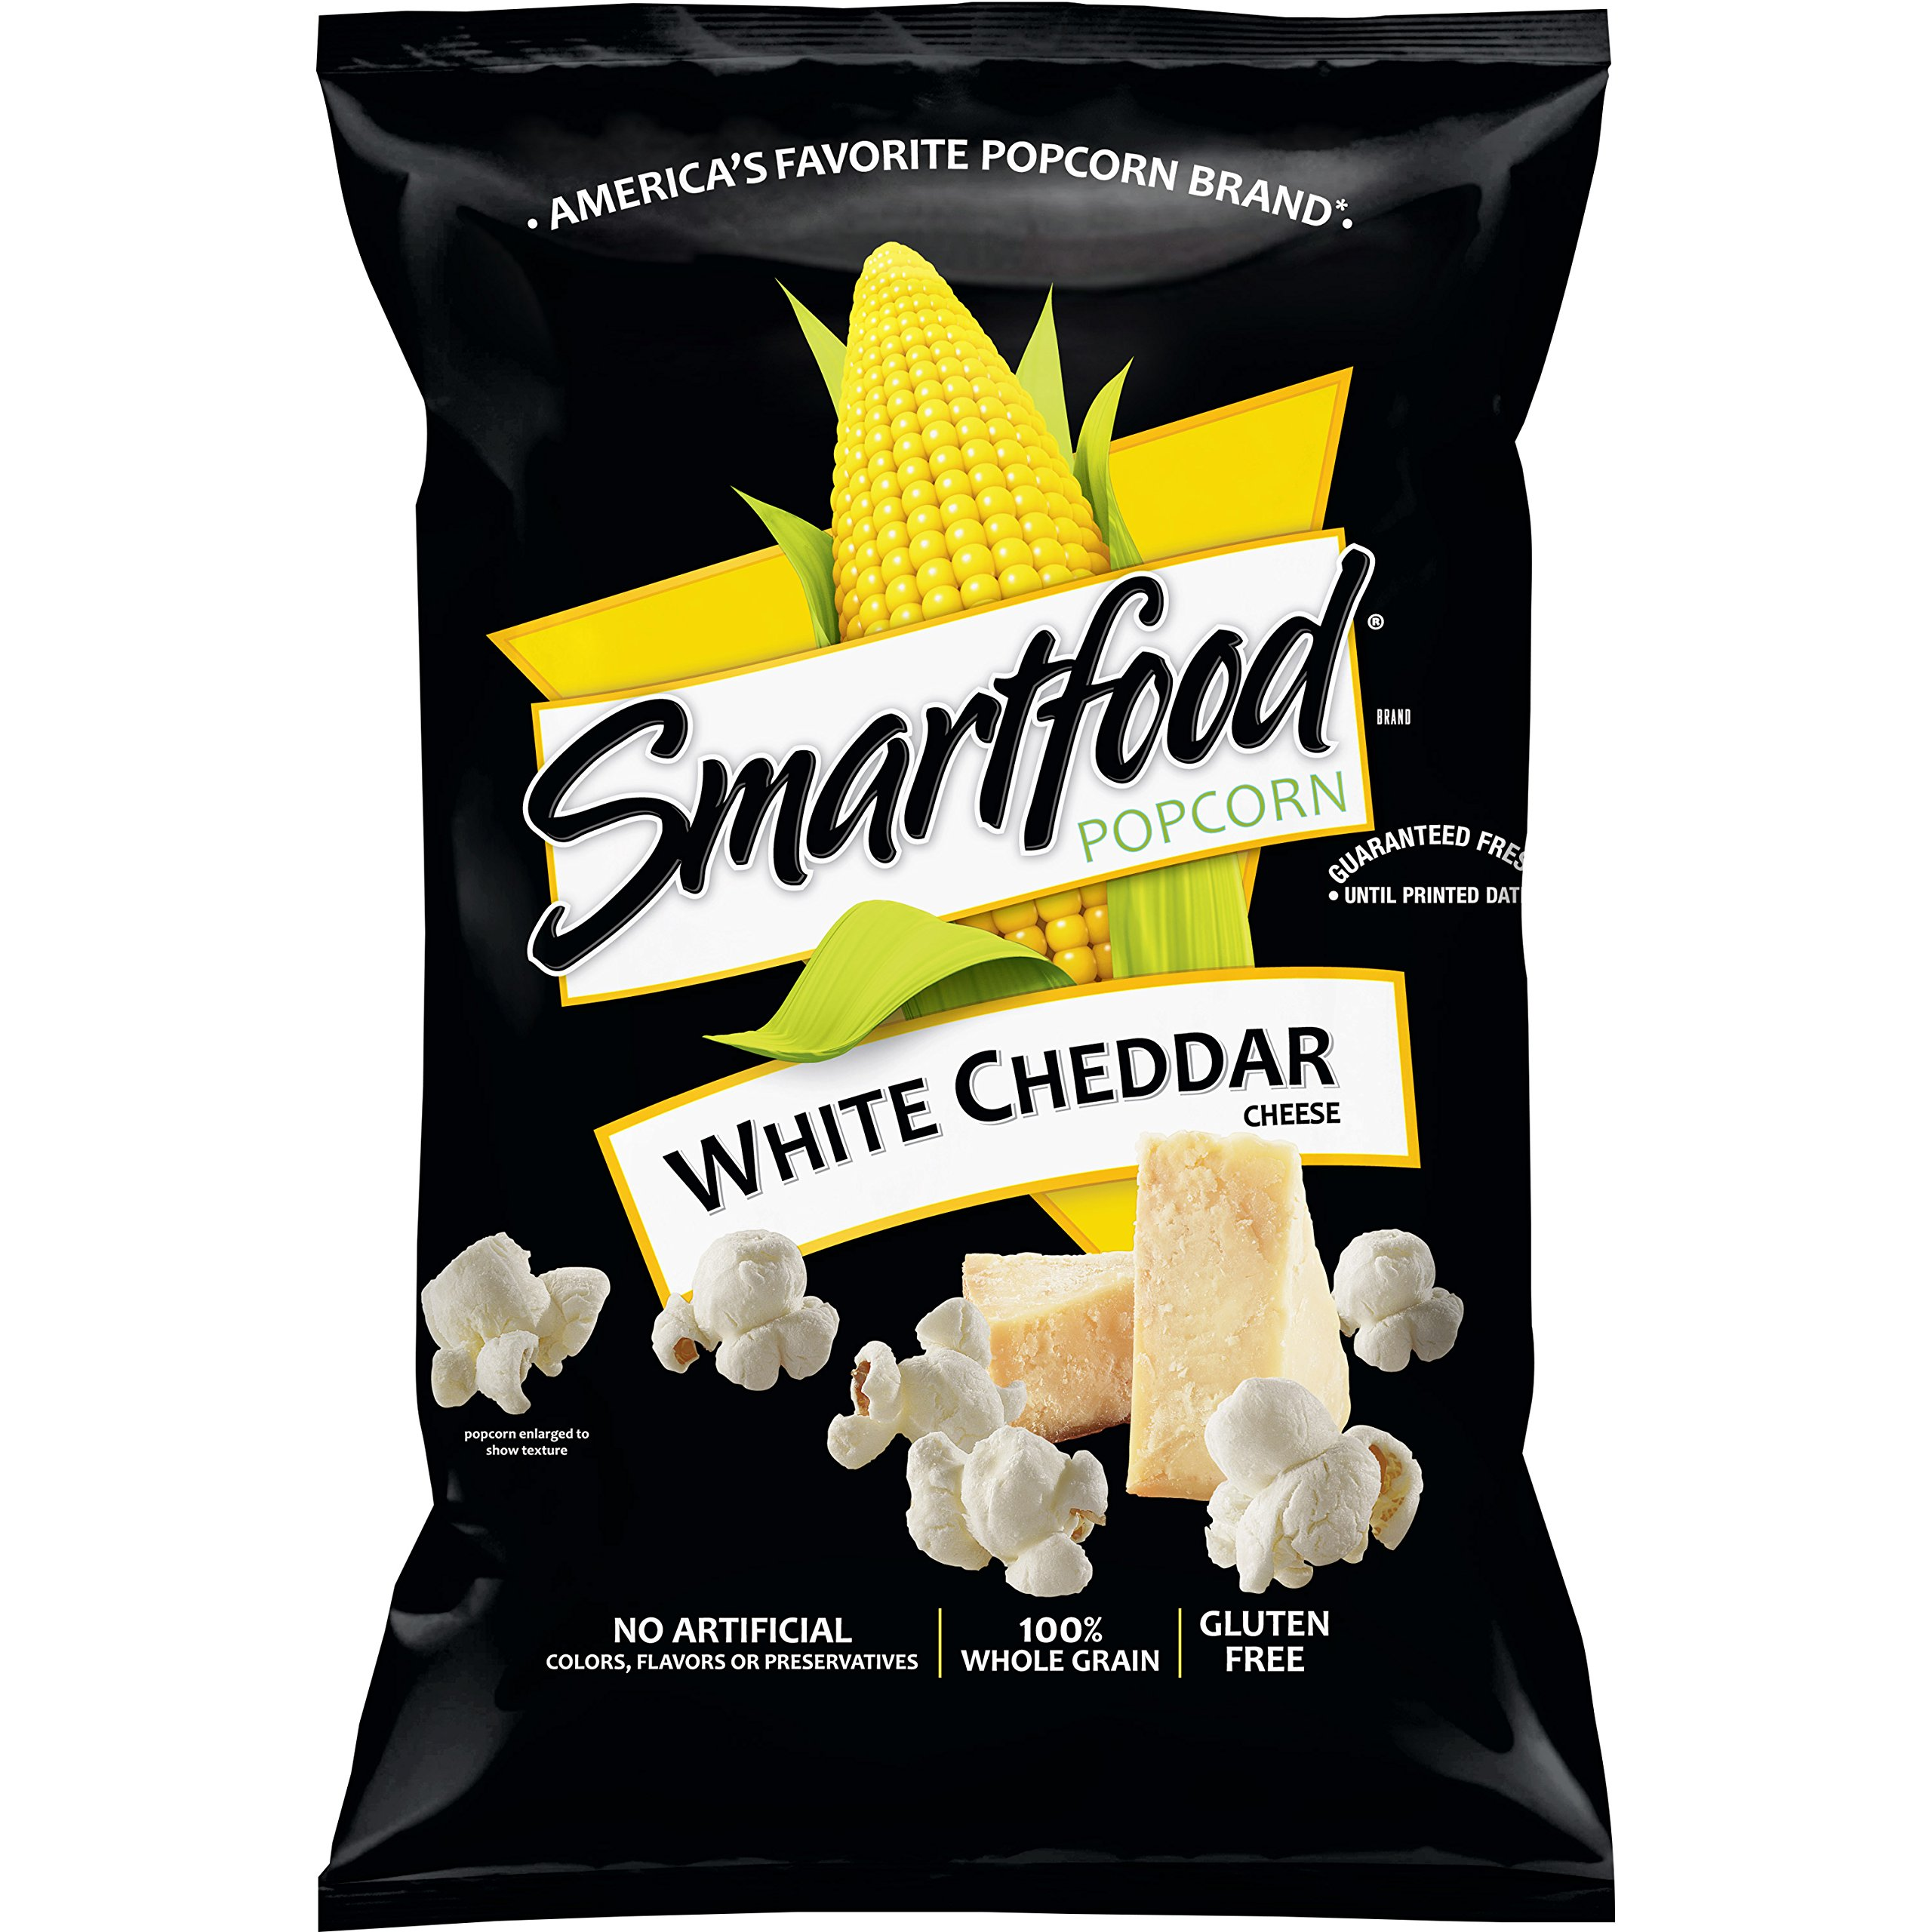 Smartfood White Cheddar Flavored Popcorn, 2.25 Ounce